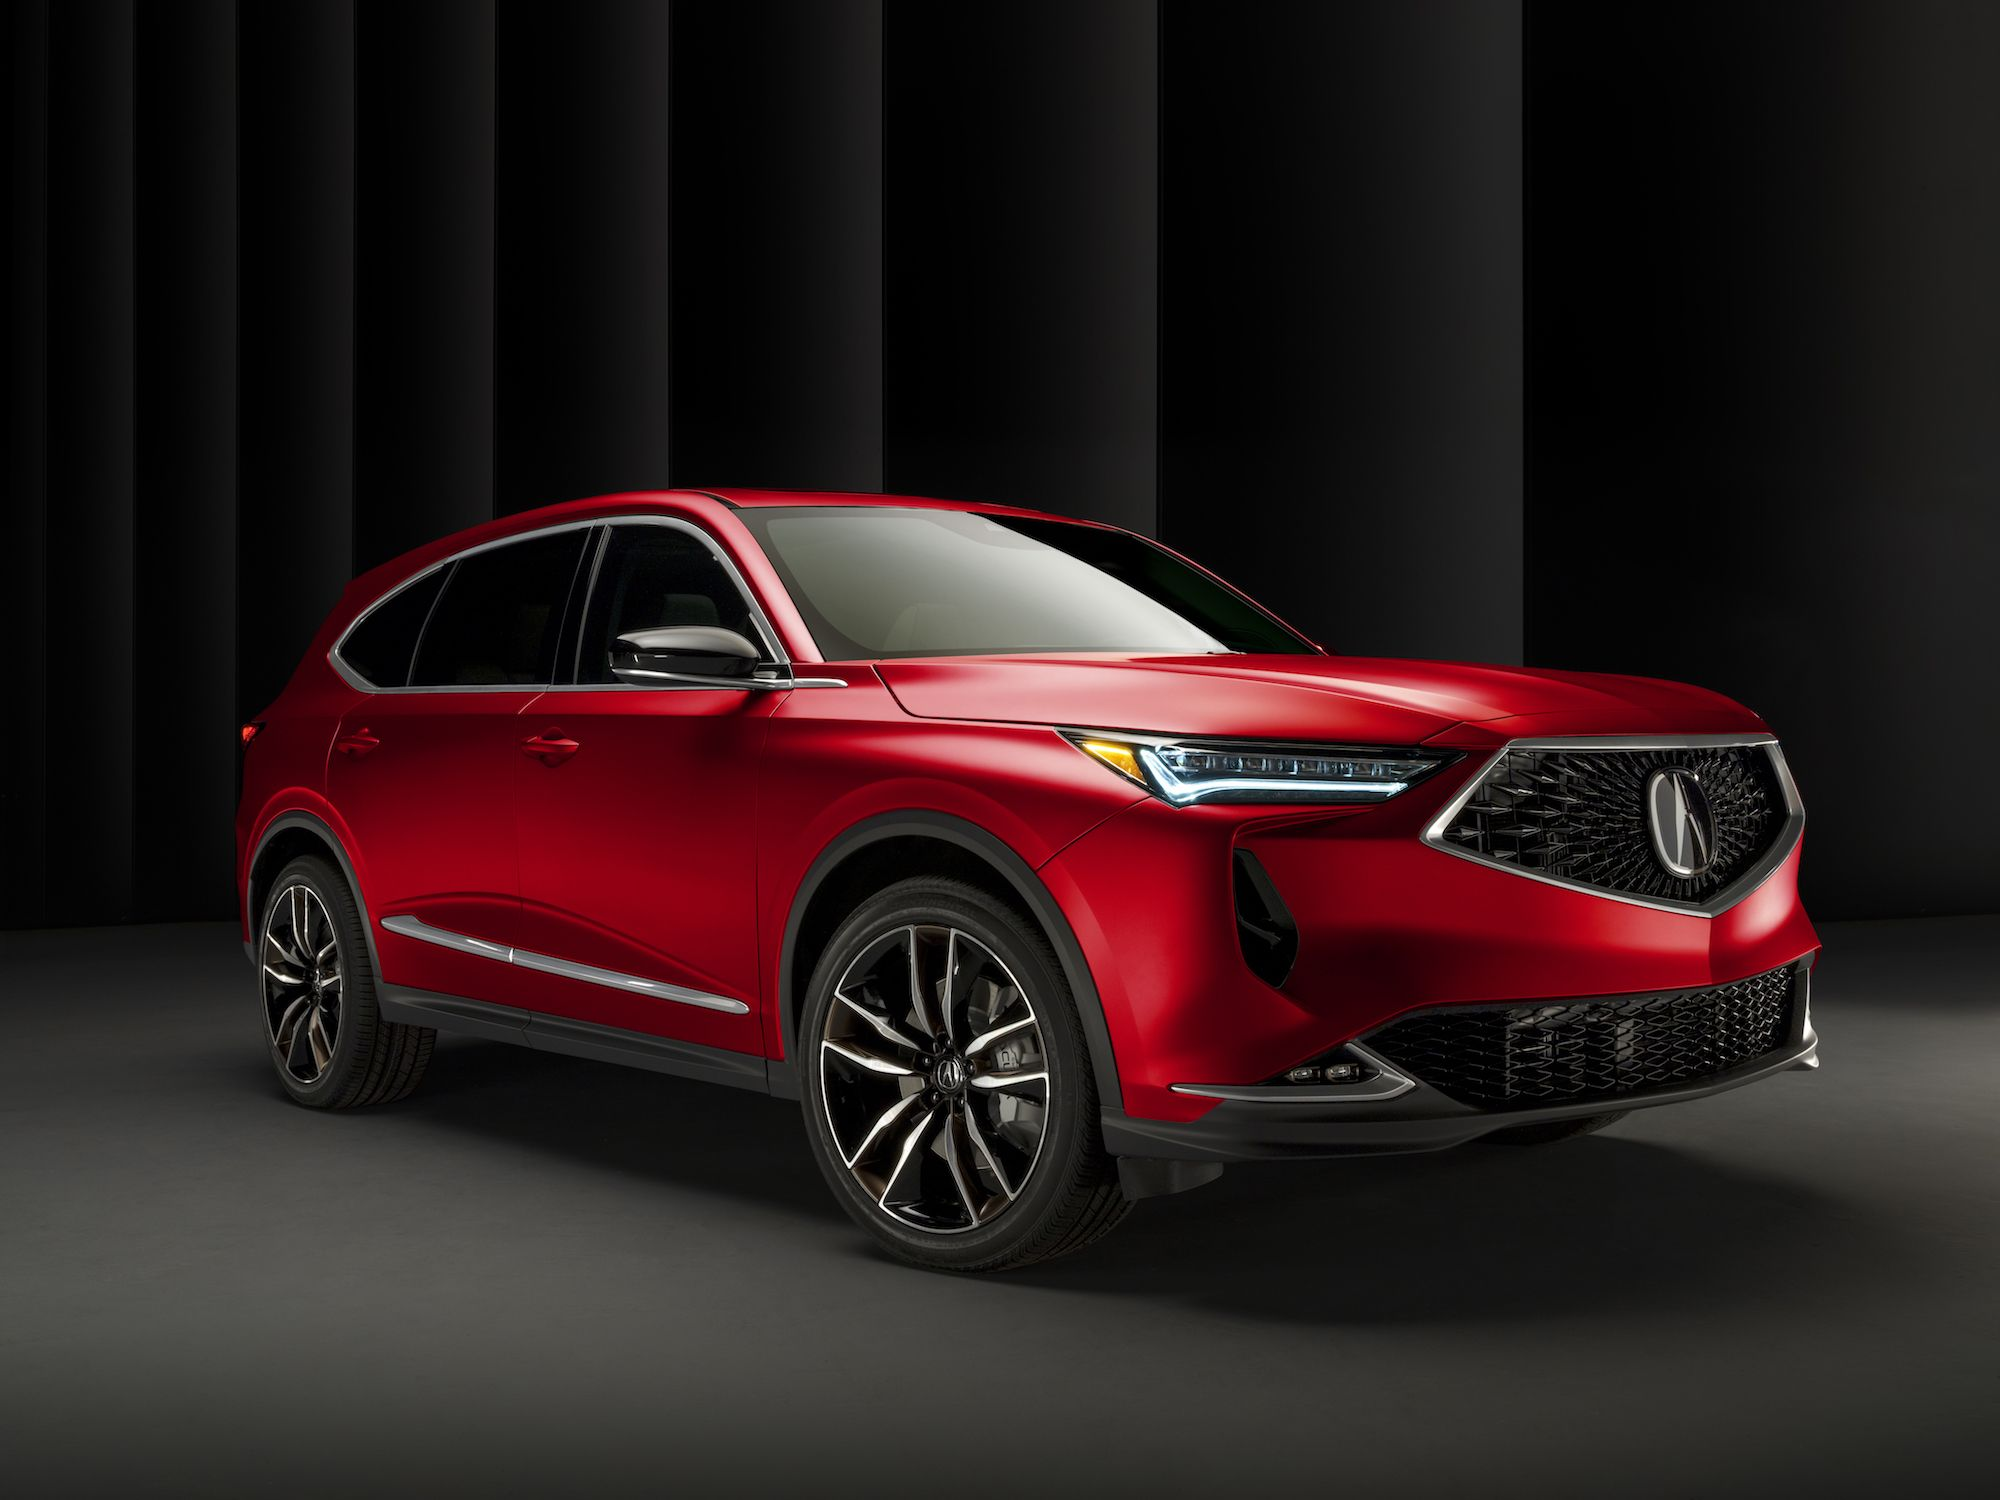 Acura Mdx Type S Will Put 355 Hp In A Handsome Package